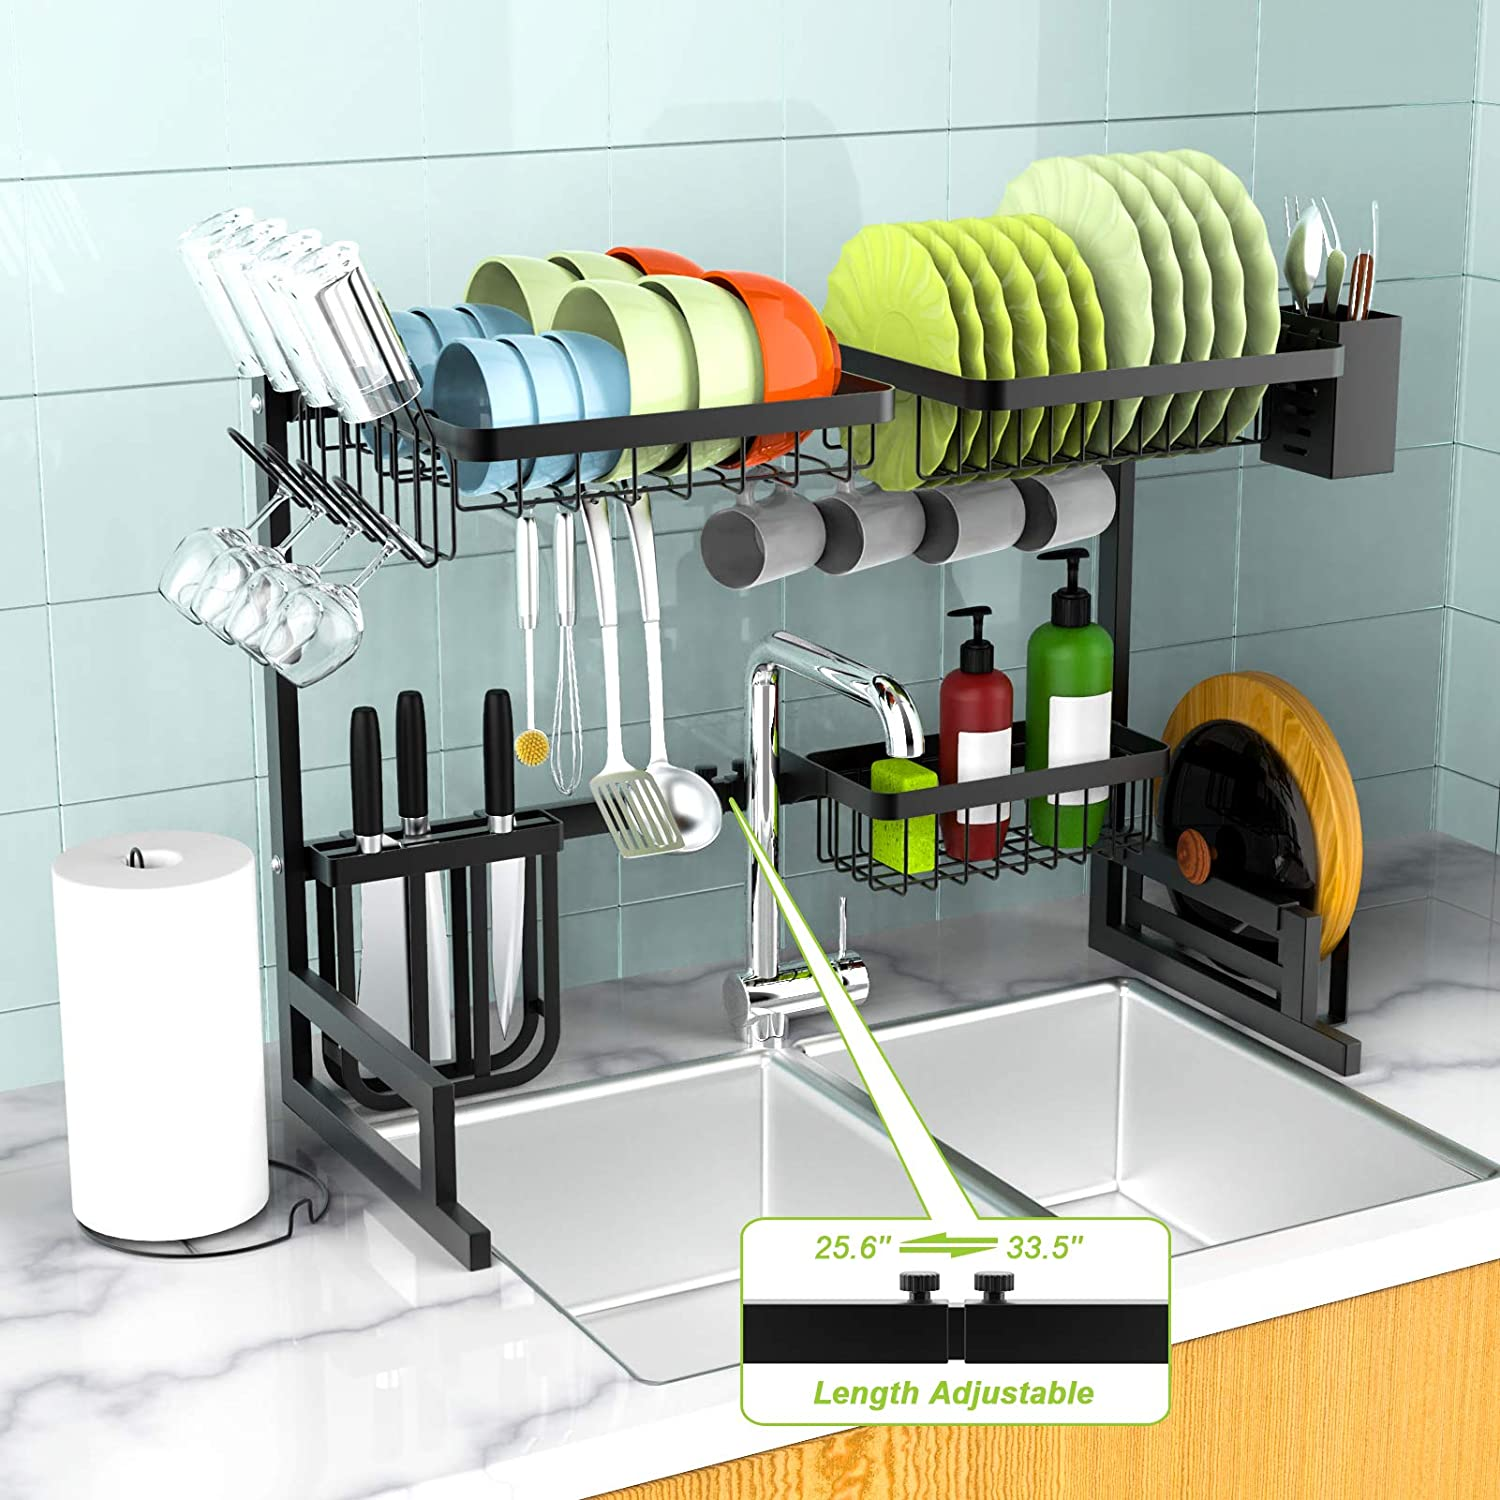 Over The Sink Dish Drying Rack - MERRYBOX Adjustable 2-Tier Stainless Steel Dish Dryer Rack Over Sink, Large Kitchen Dish Drying Rack with 8 Hook for Home Kitchen Counter (24.4≤ Sink Size ≤ 32.3 inch)